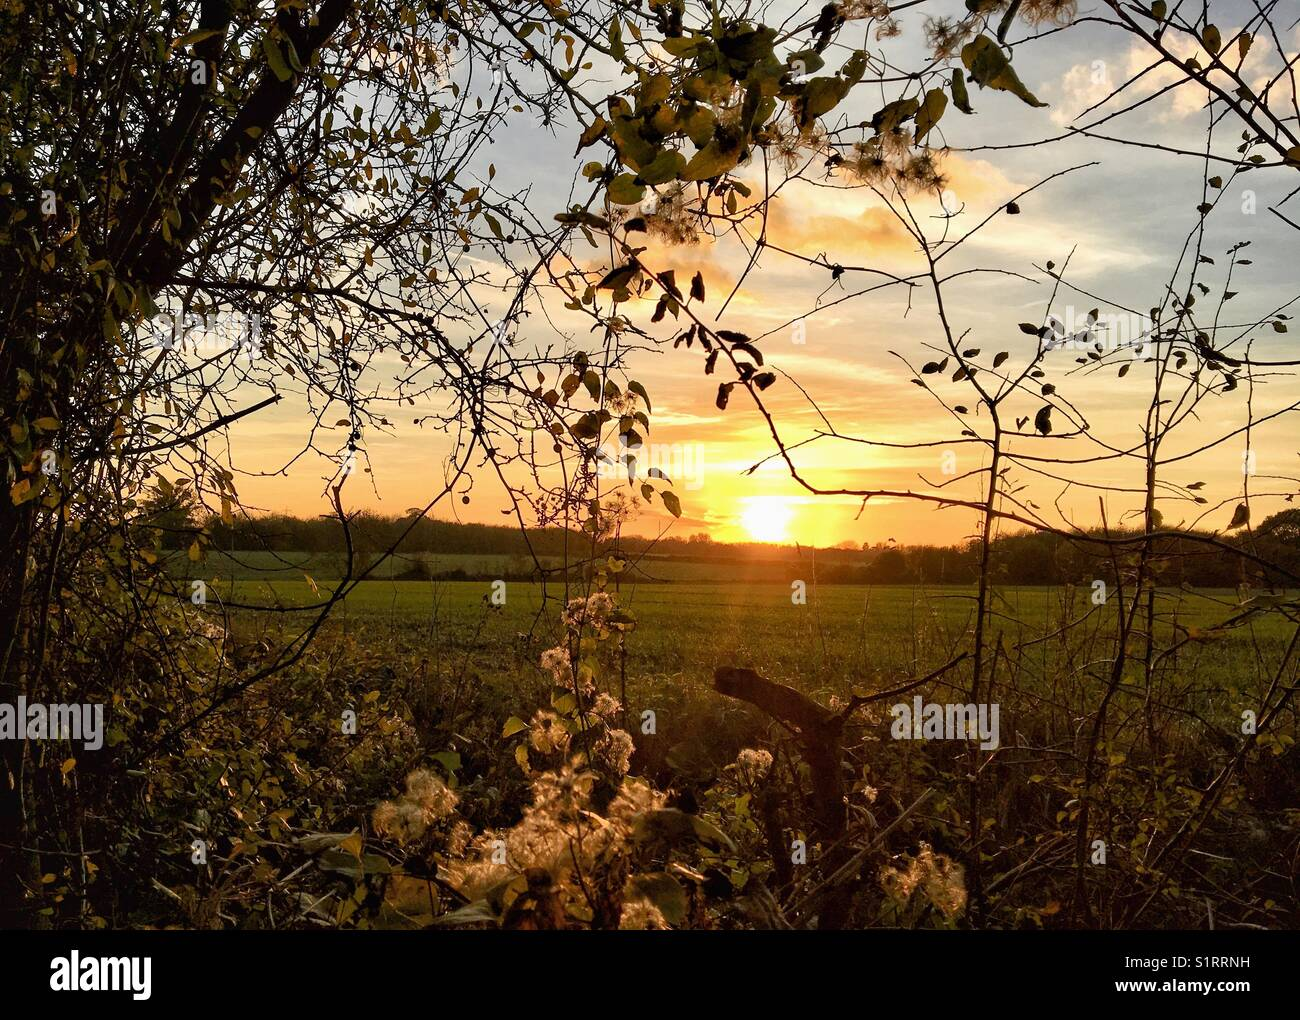 The setting sun lighting up the Old Man's Beard seedheads in a rural location near Harlow in Essex - Stock Image